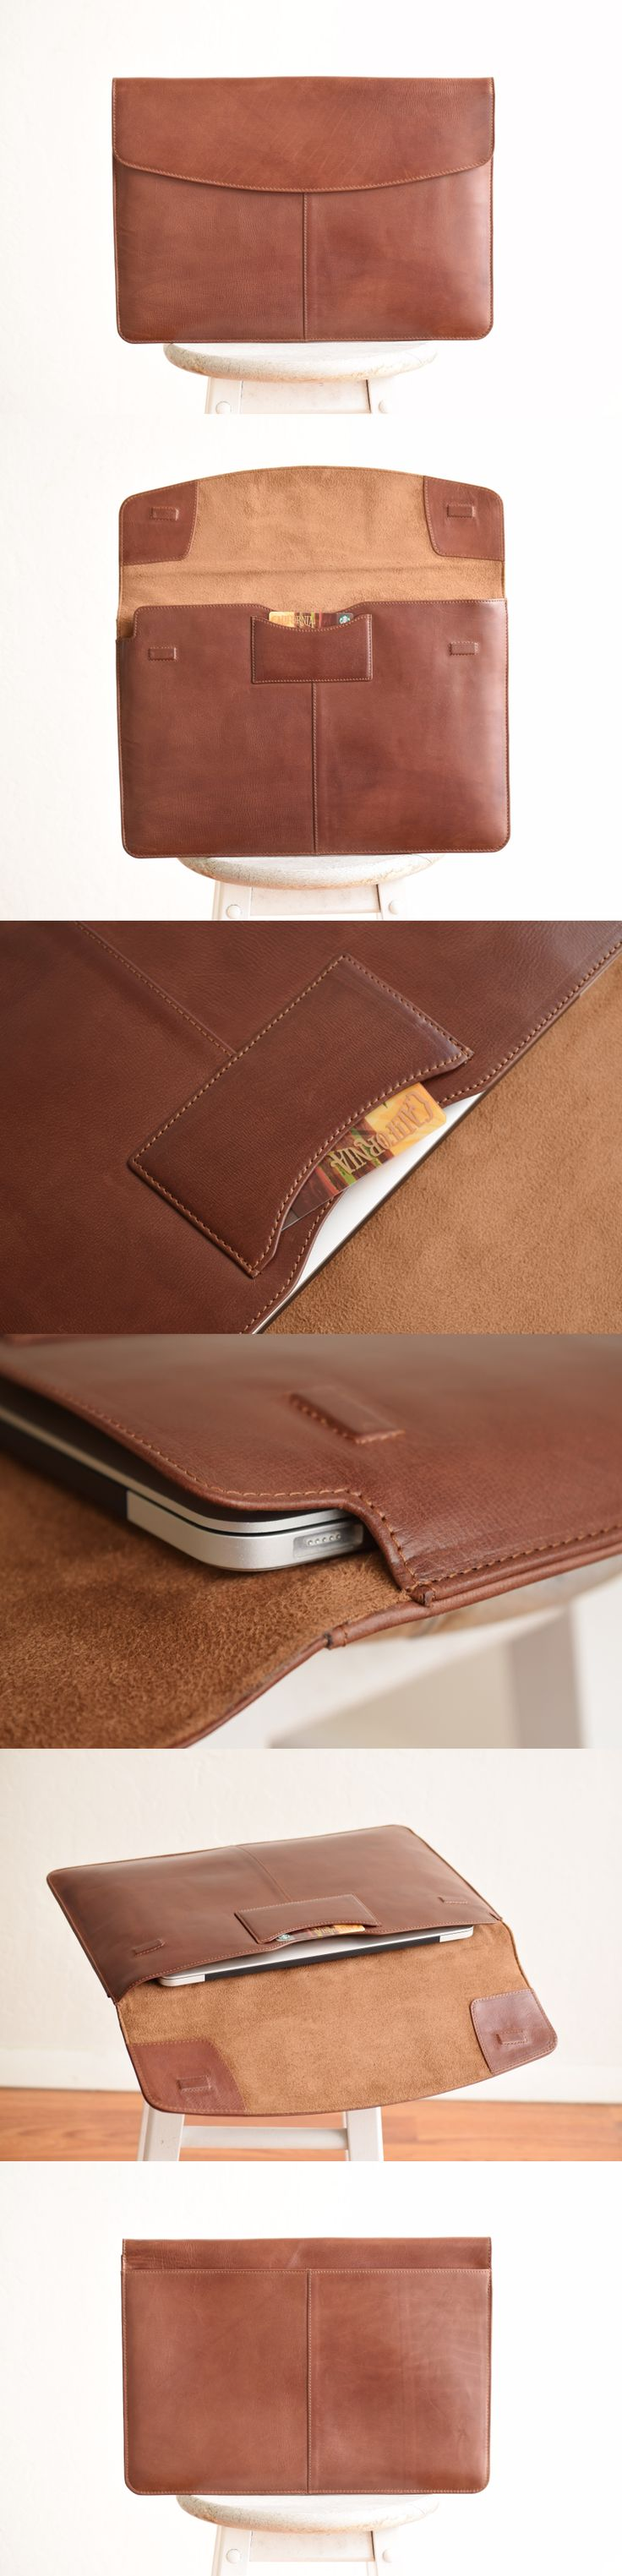 """This rich vegetable tanned leather laptop sleeve by #ERA81 for 13""""-15"""" laptops is a perfect companion for your daily work wardrobe. Follow the link to see all the colors available!"""